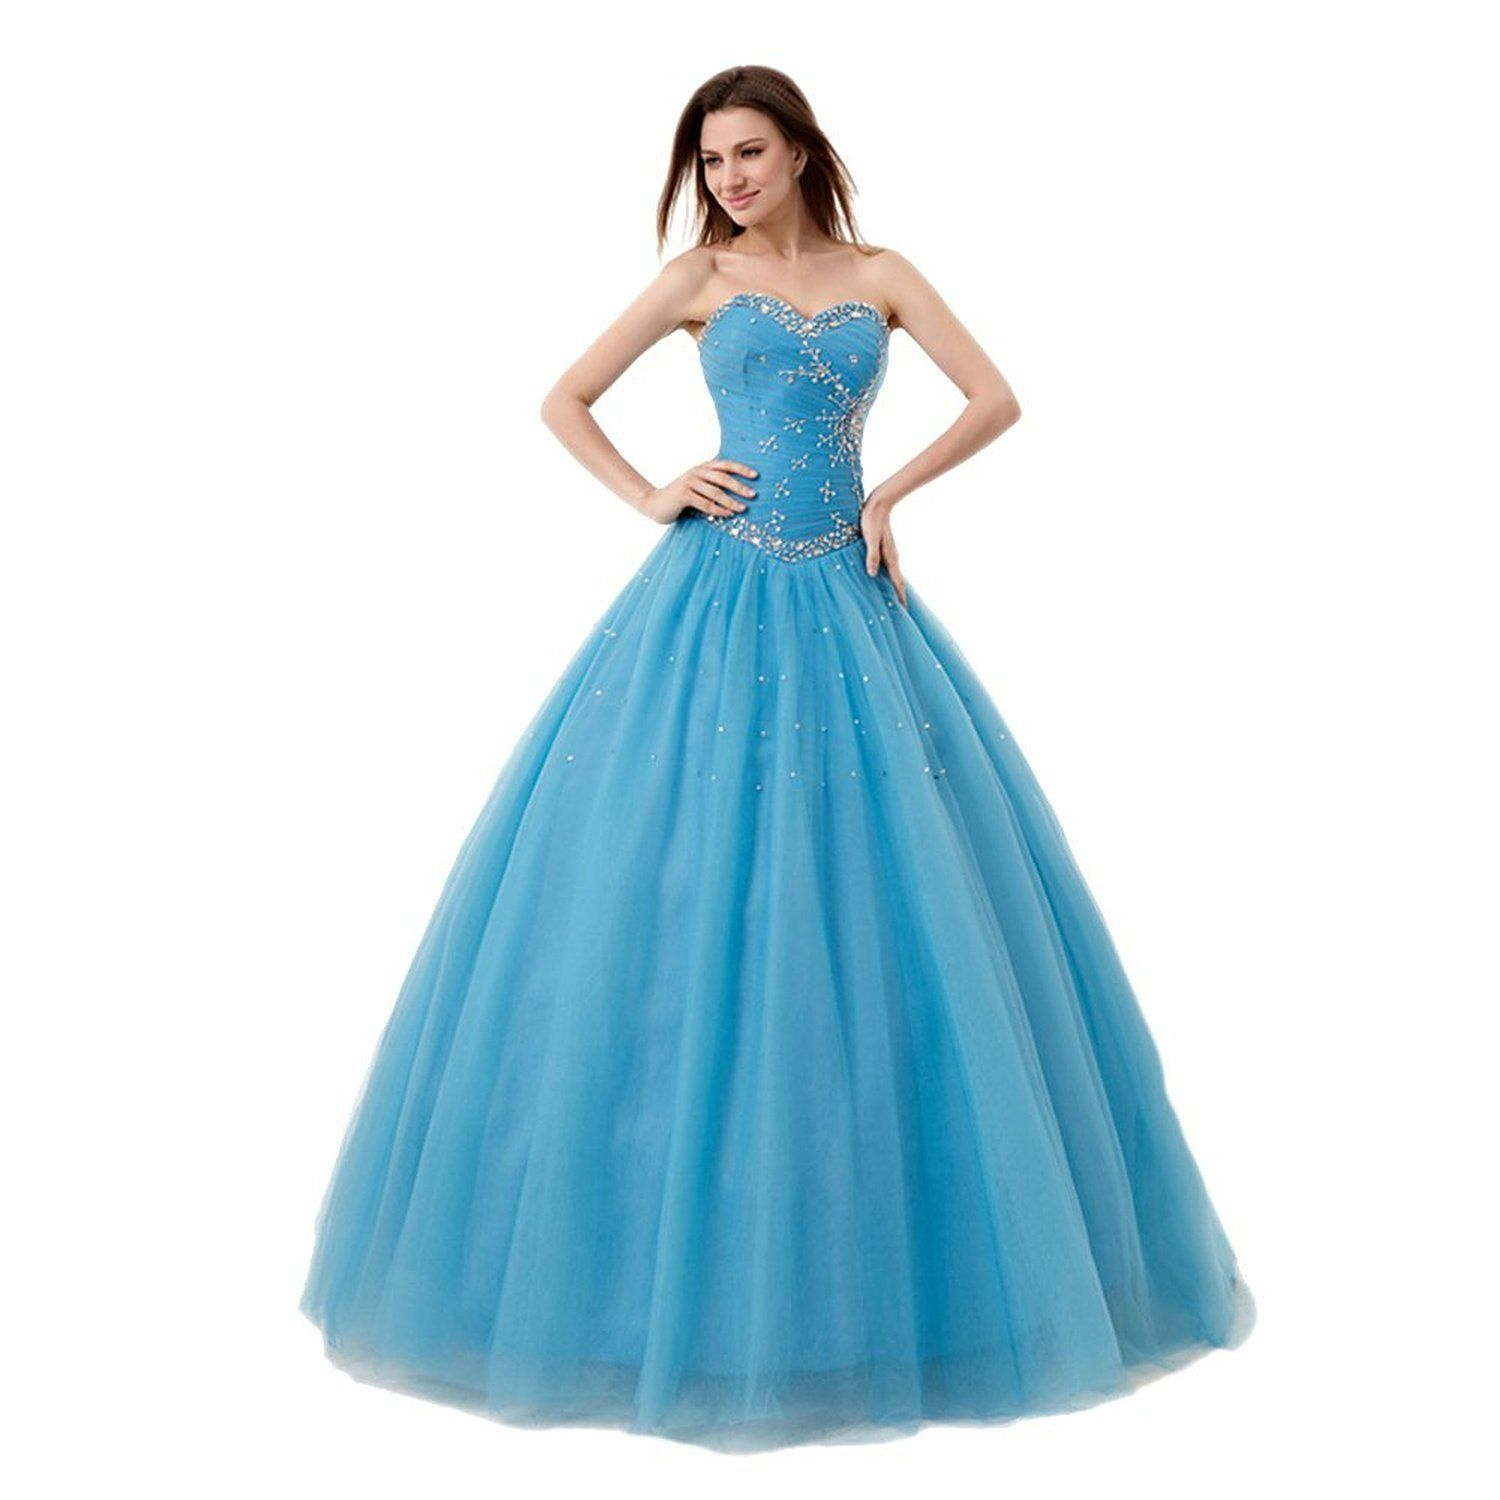 Crystal dresses womenus sweetheart beading tulle long prom dresses